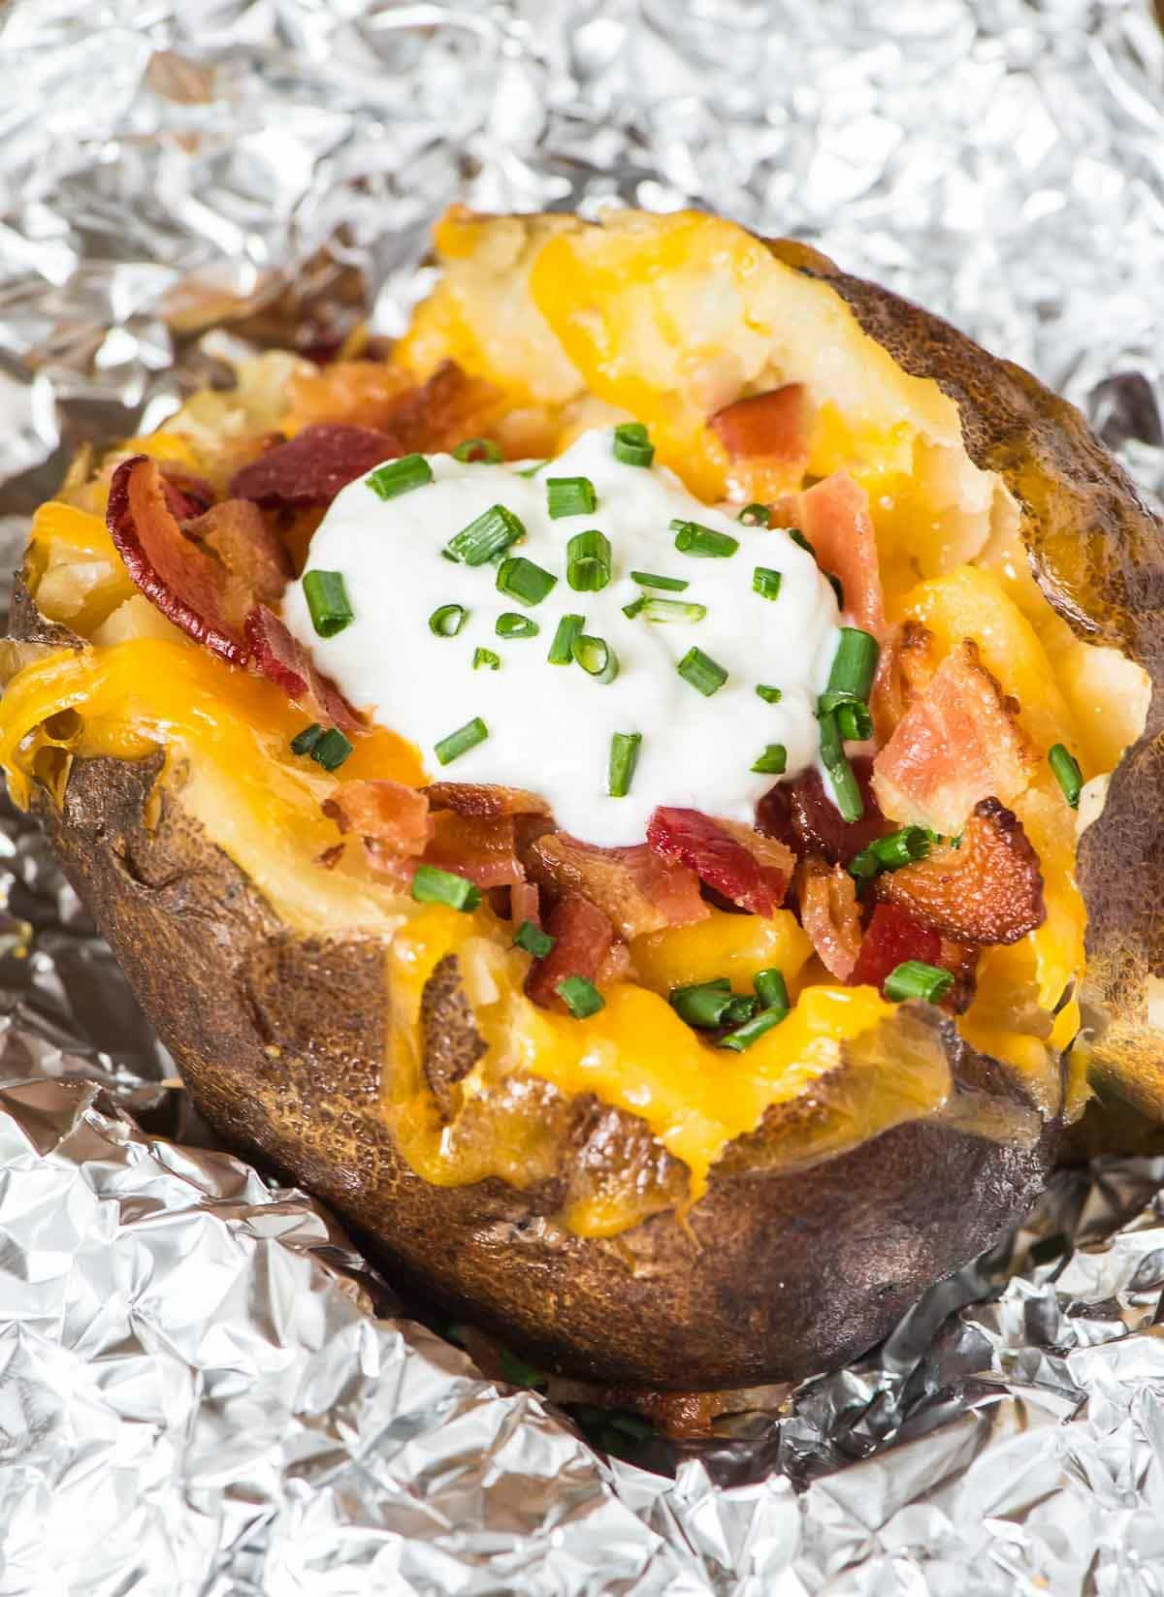 How to Make Crock Pot Baked Potatoes | Well Plated by Erin - oven baked potato recipes dinner